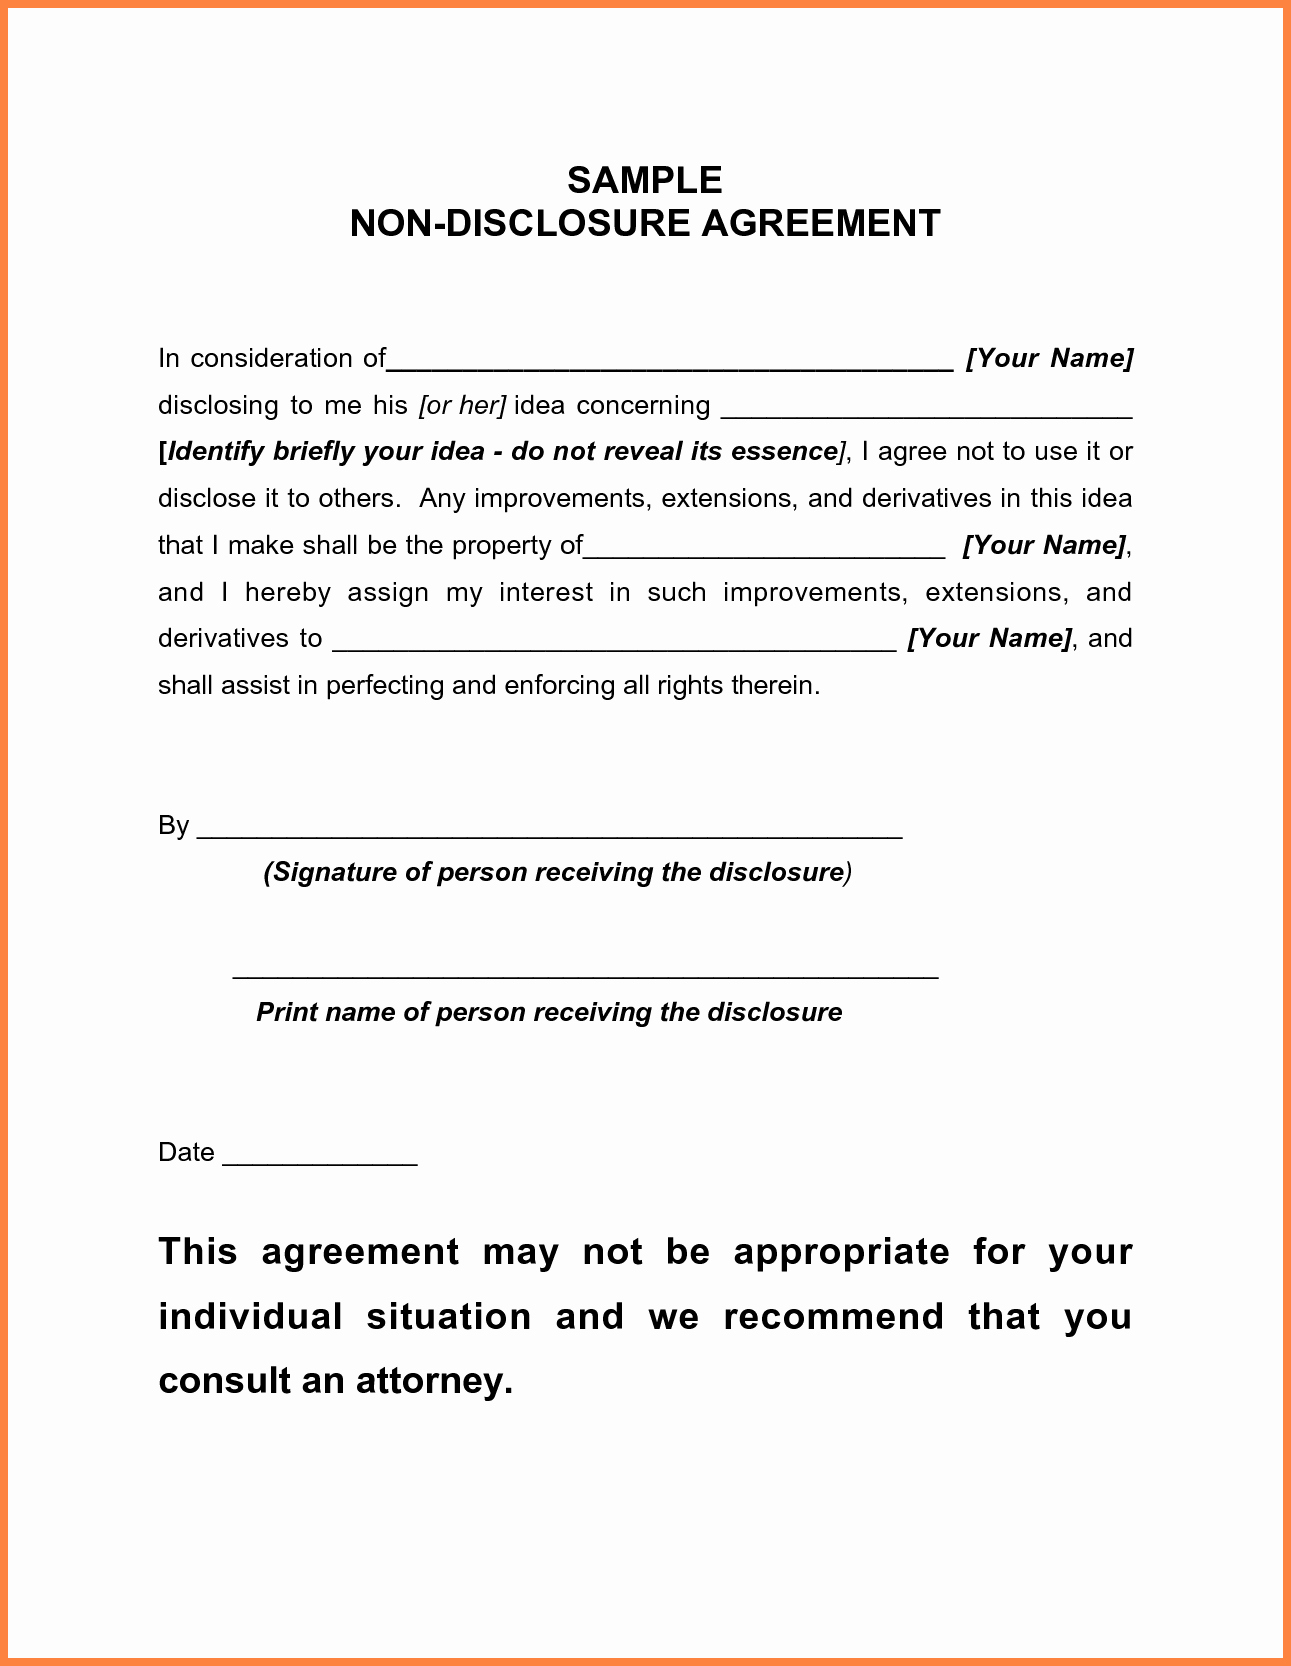 Free Non Disclosure Agreement Form 018 Free Non Disclosure Agreement Template Luxury Sample